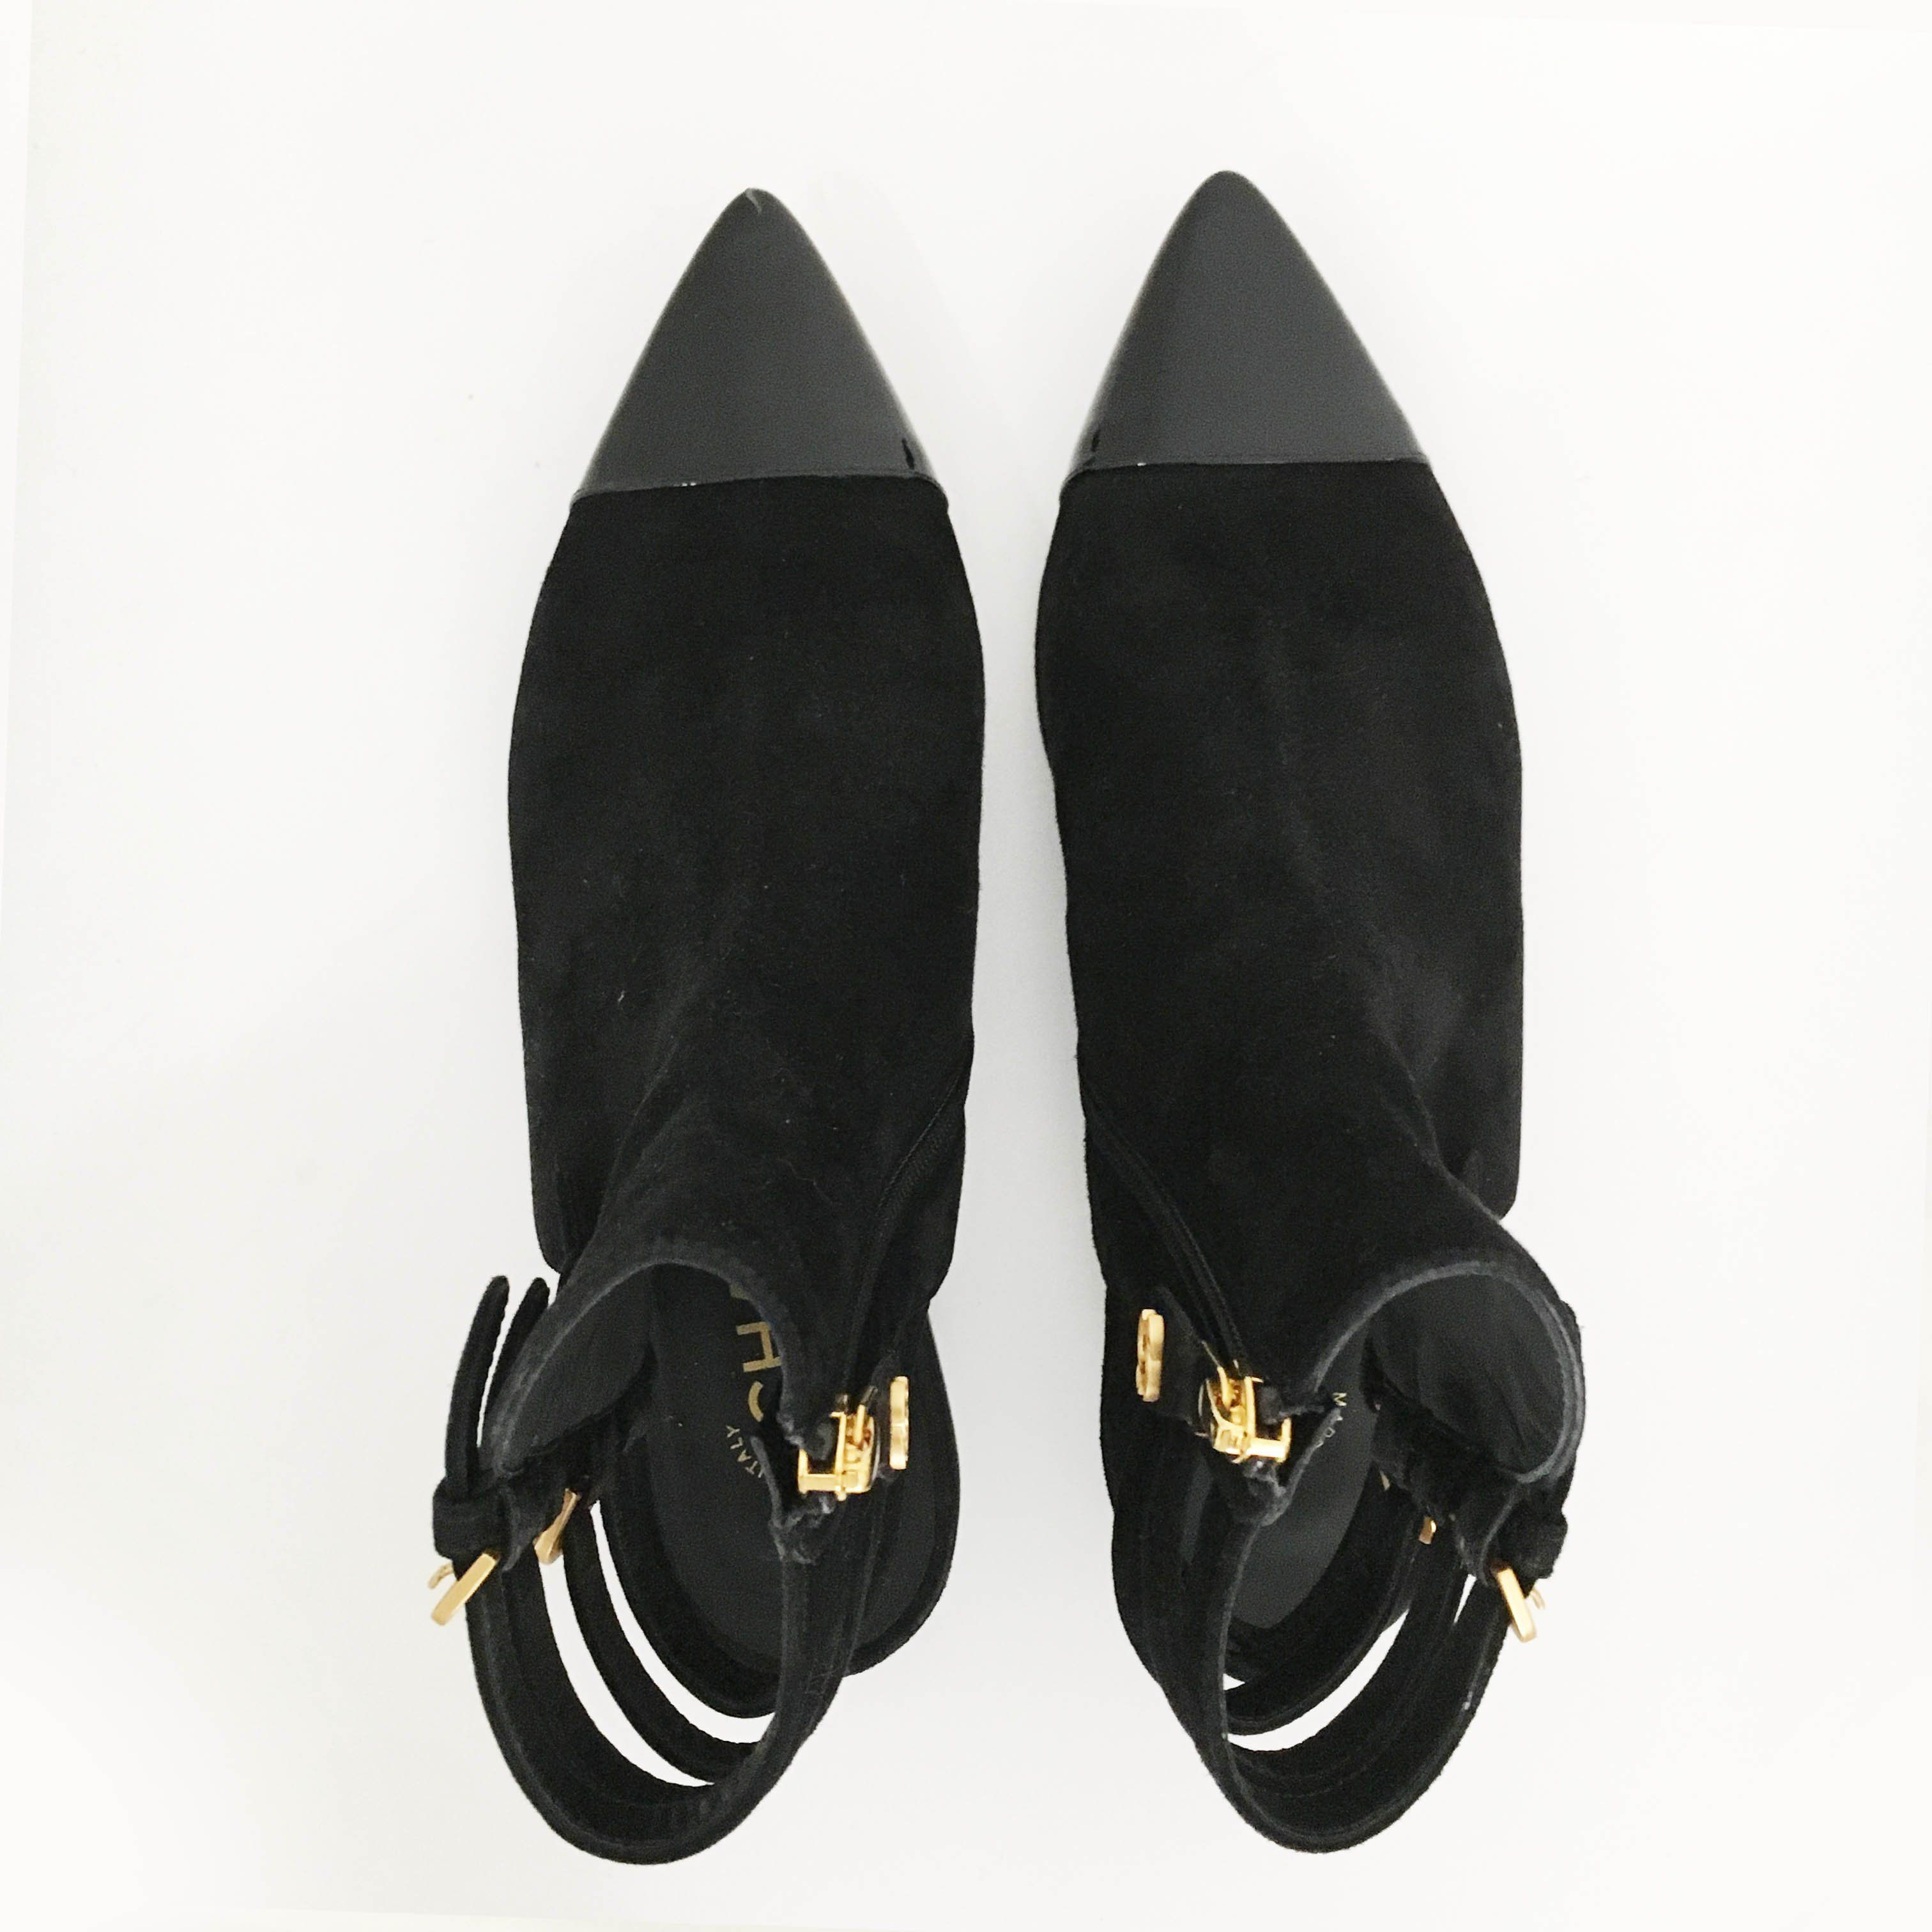 Chanel Suede Pointed Toe Flat Shoes